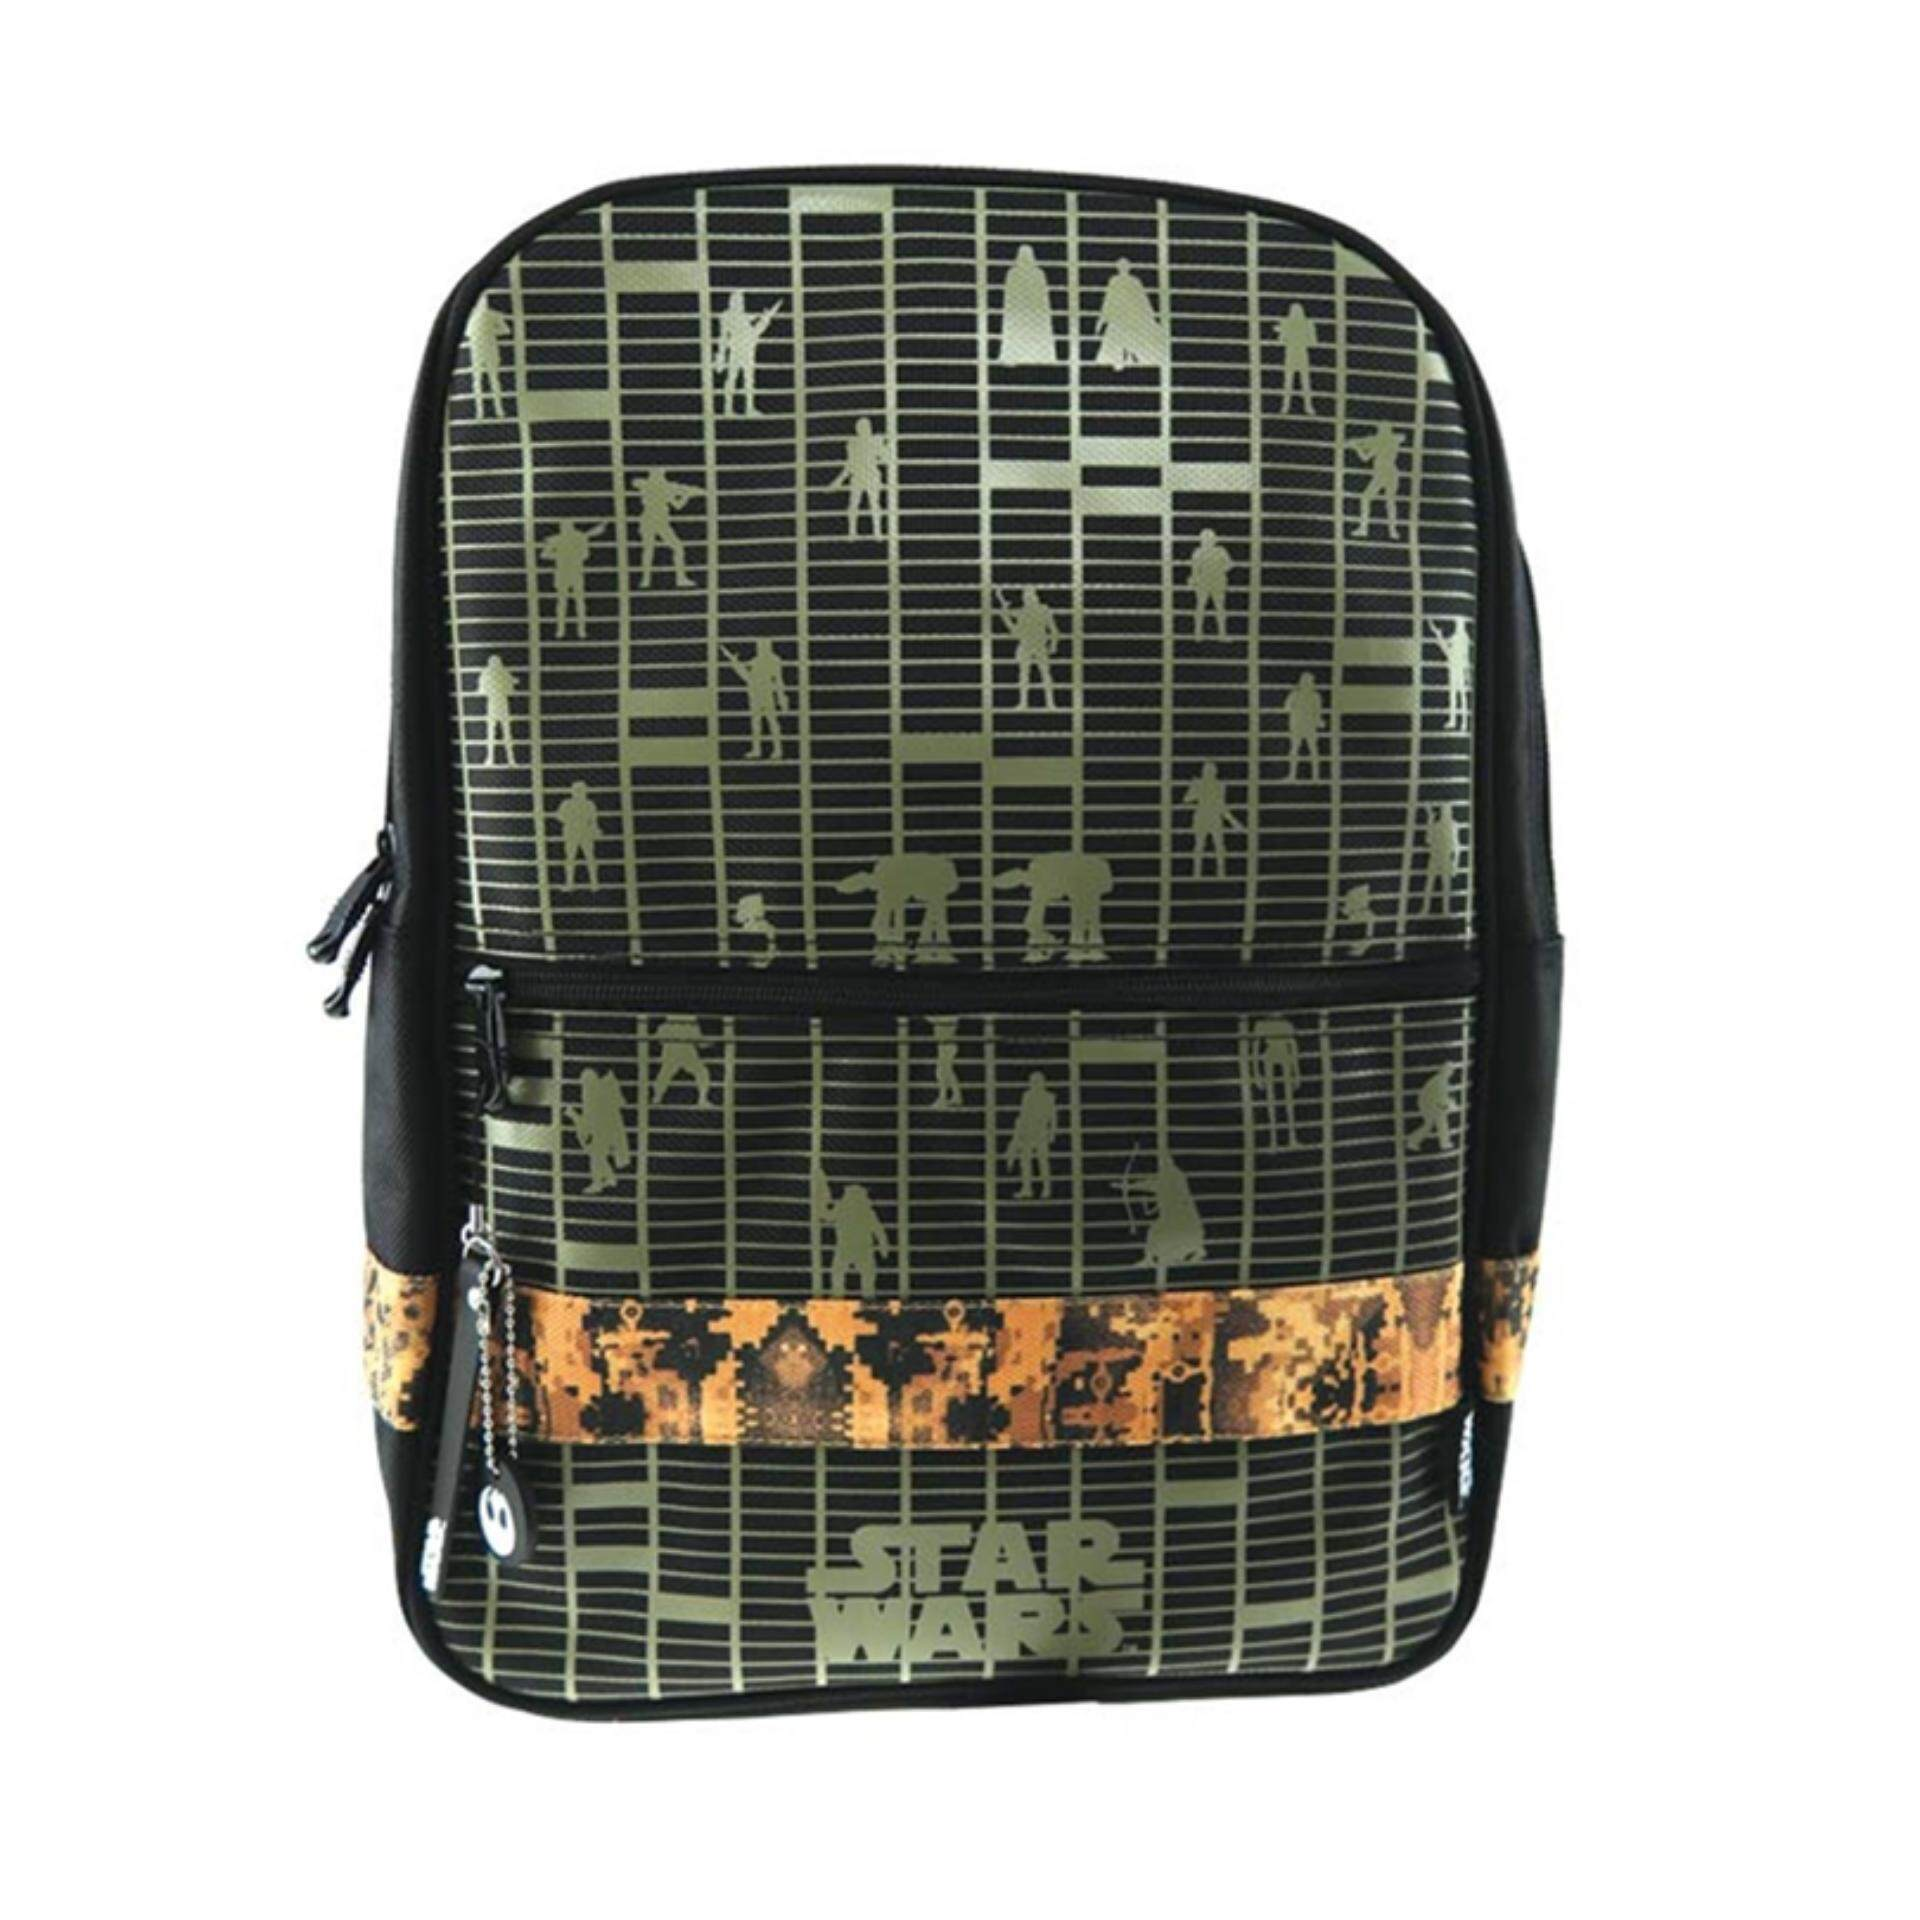 Disney Star Wars Rogue One Classic Backpack School Bag - Imperial Force